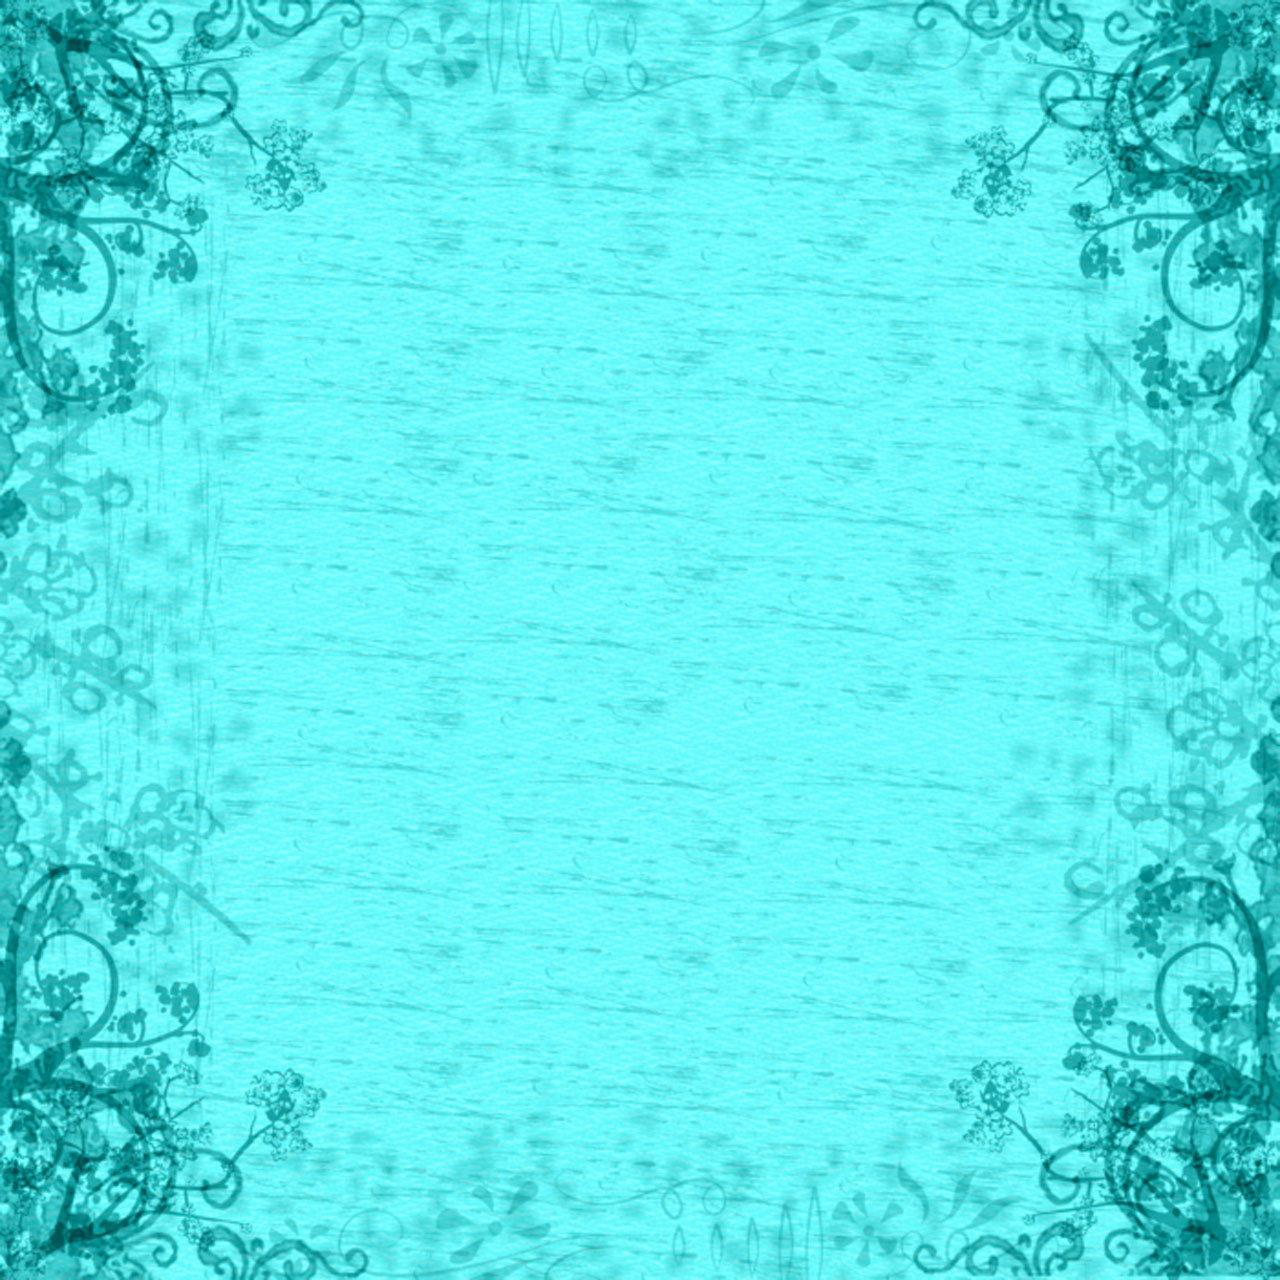 Teal backgrounds tumblr - photo#28